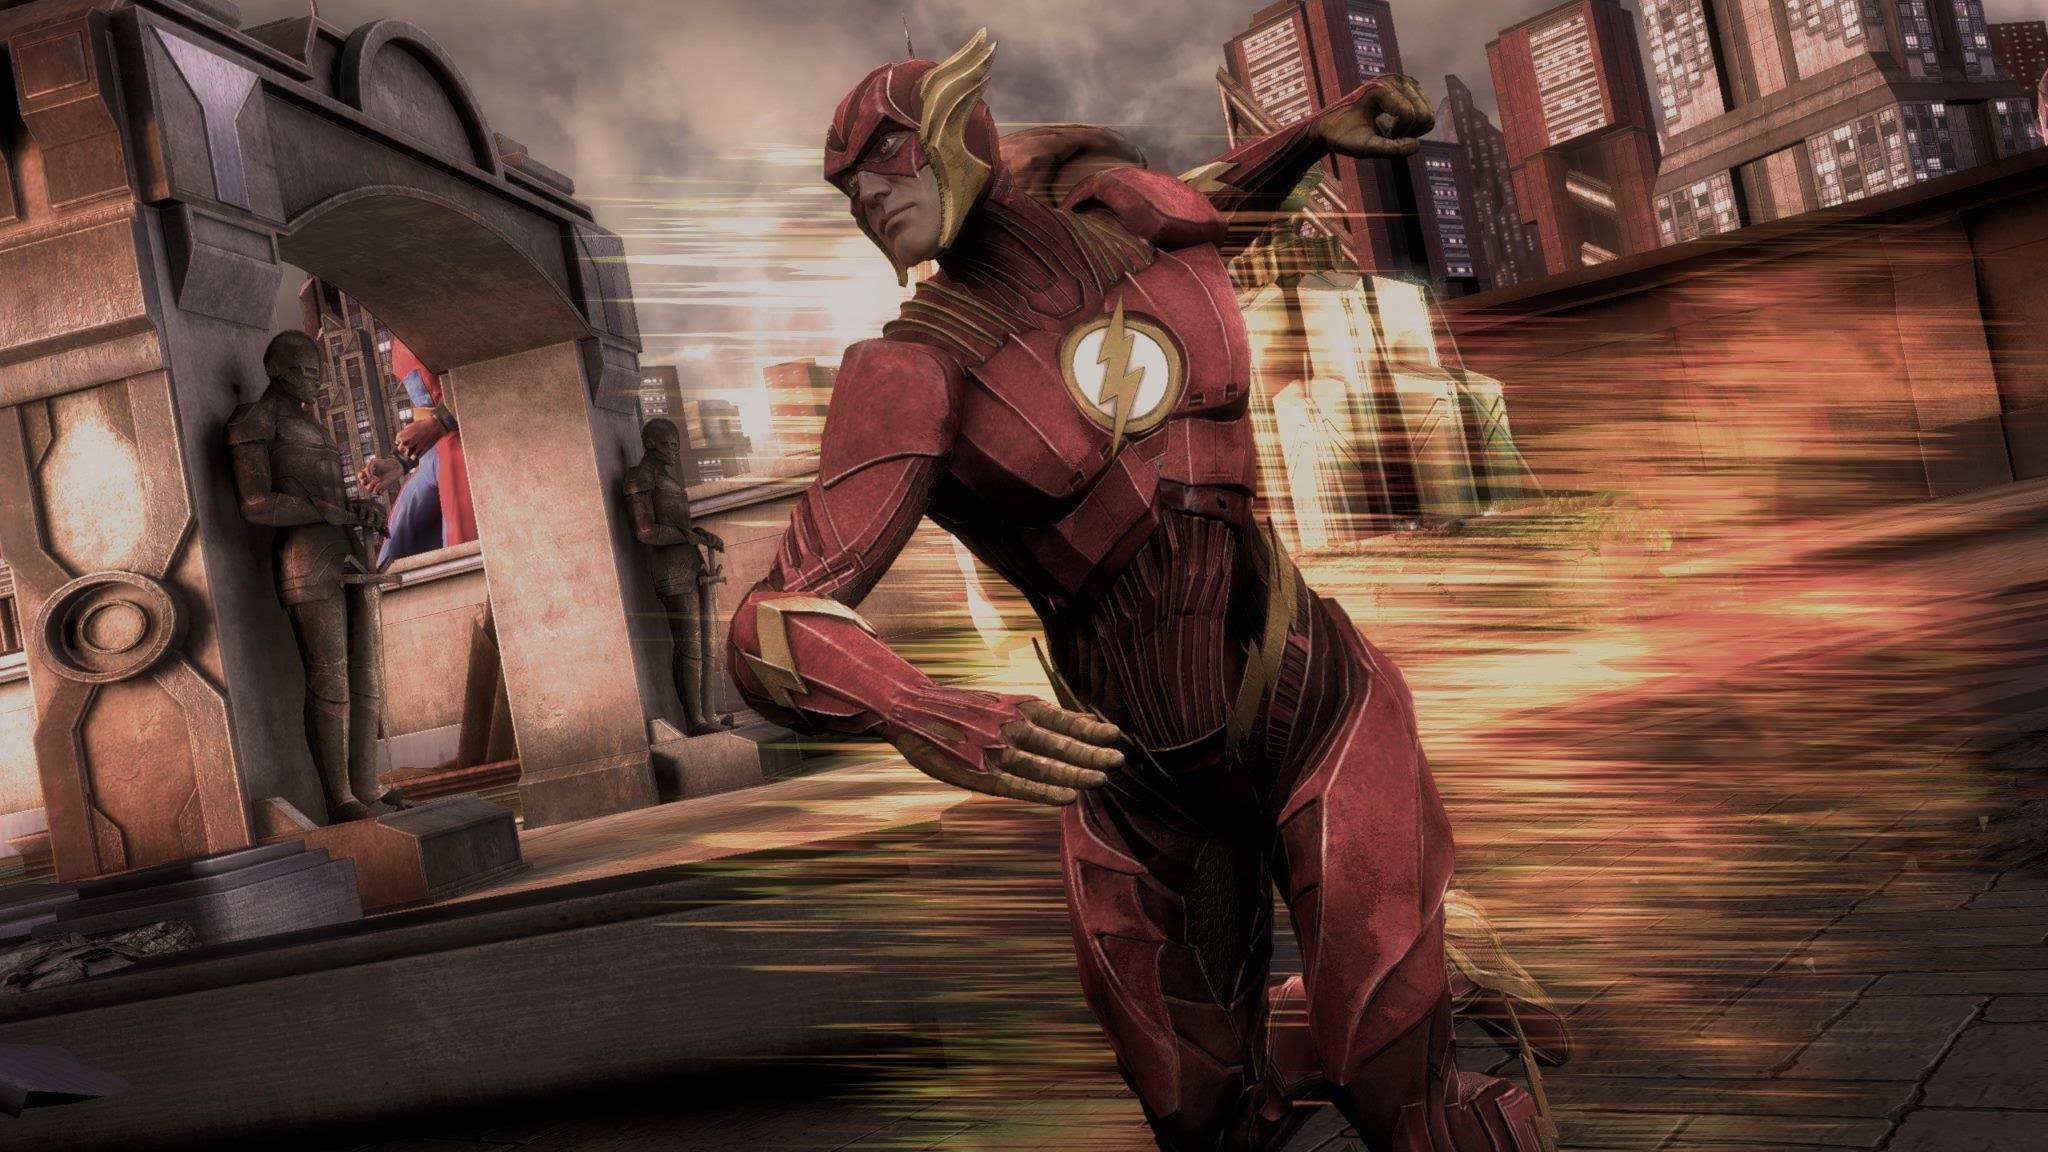 Flash Injustice Wallpaper High Definition Is Cool Wallpapers